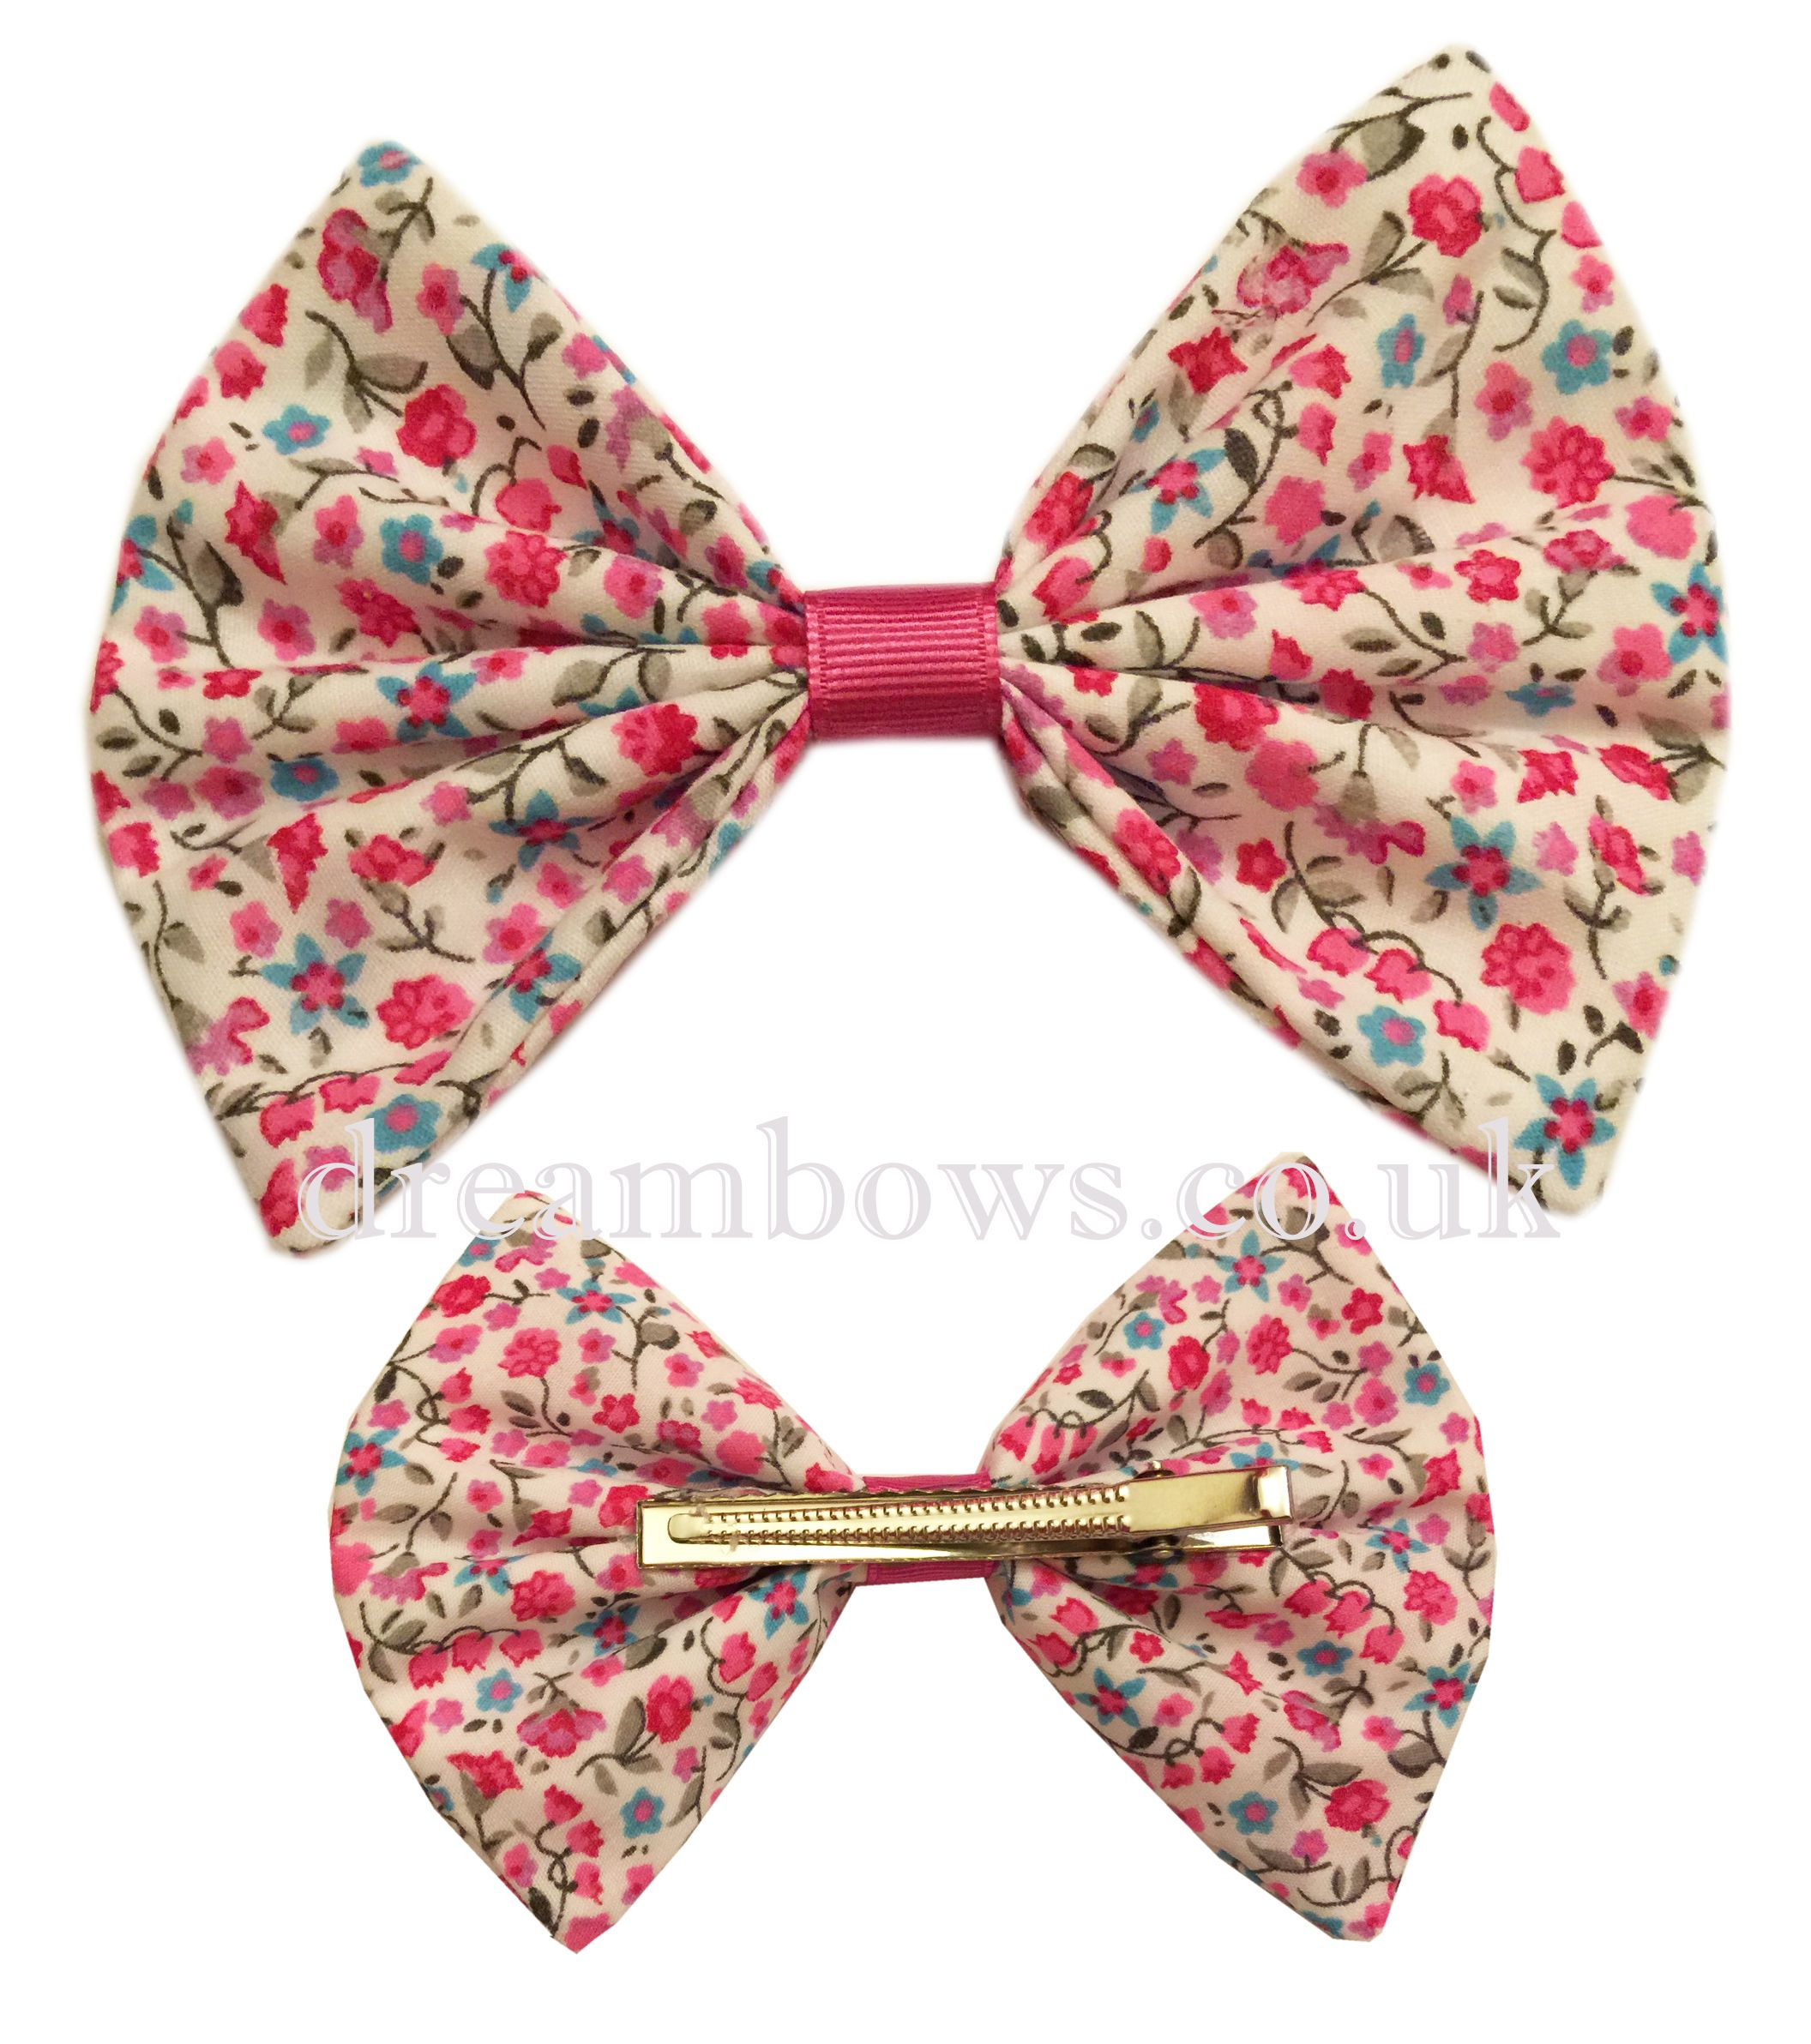 Pink and white large floral hair bow on crocodile hair clip for girls - www.dreambows.co.uk